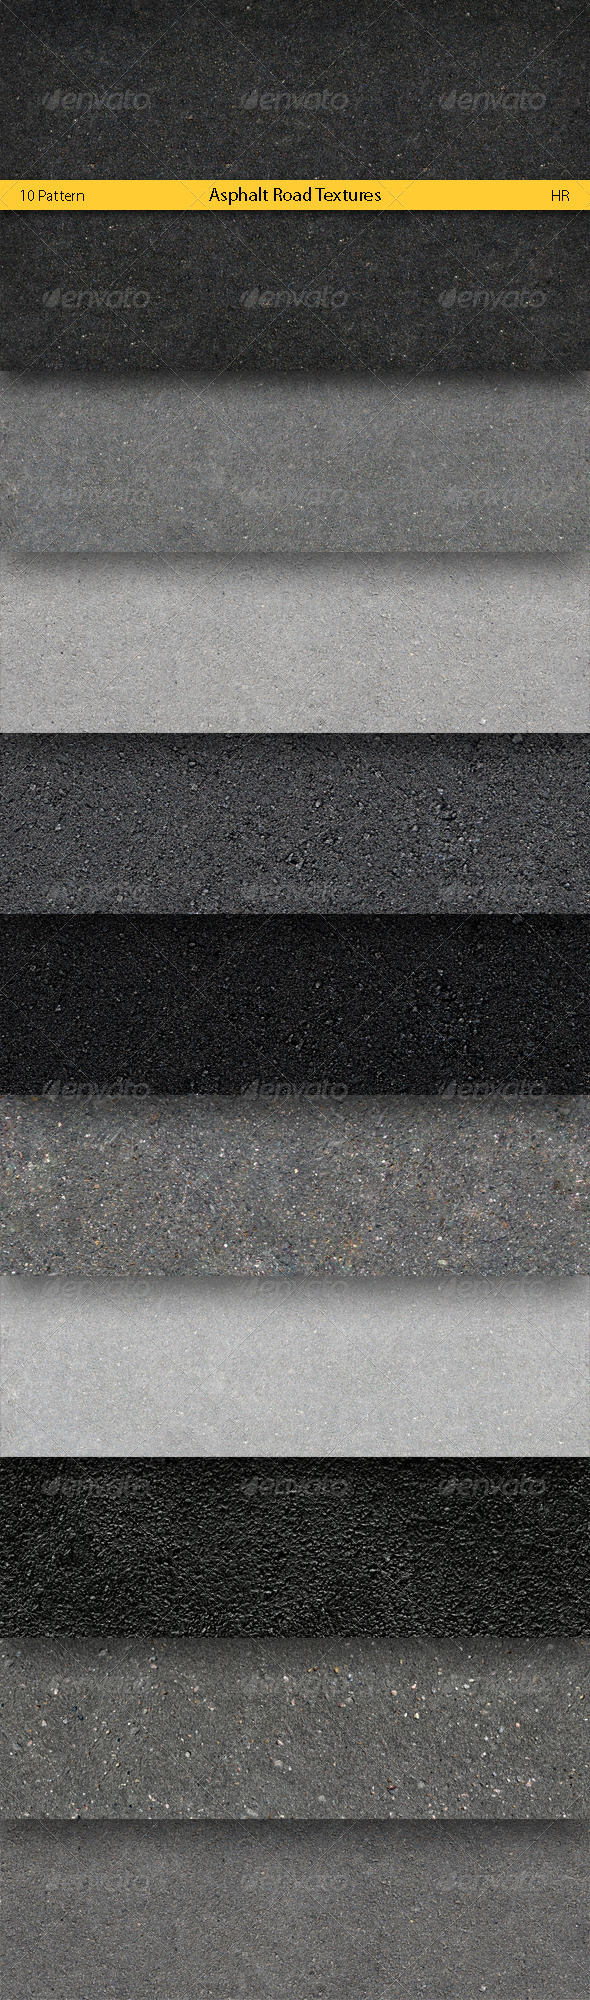 Asphalt Road Surface Textures - Urban Textures / Fills / Patterns